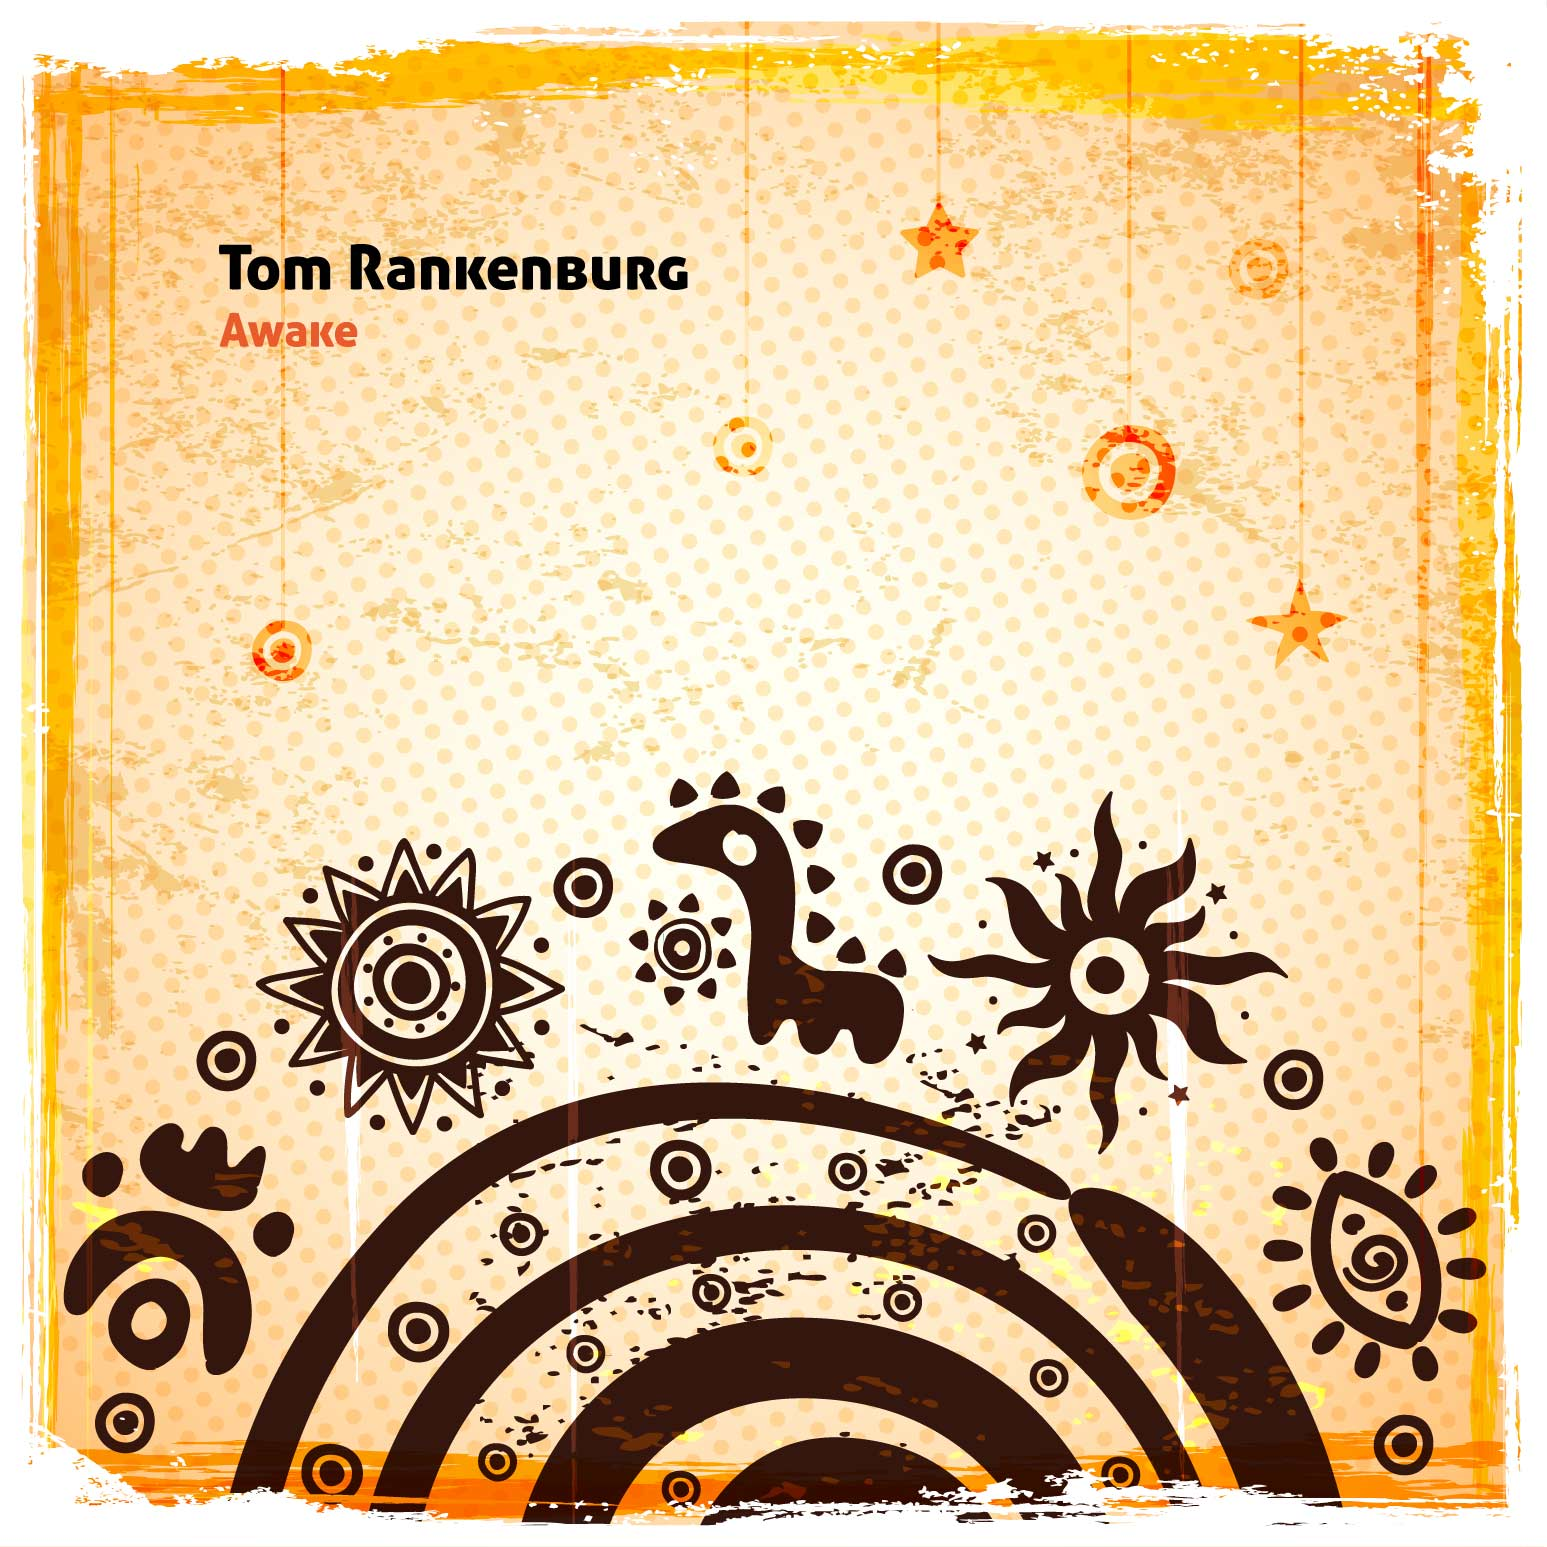 Tom Rankenburg